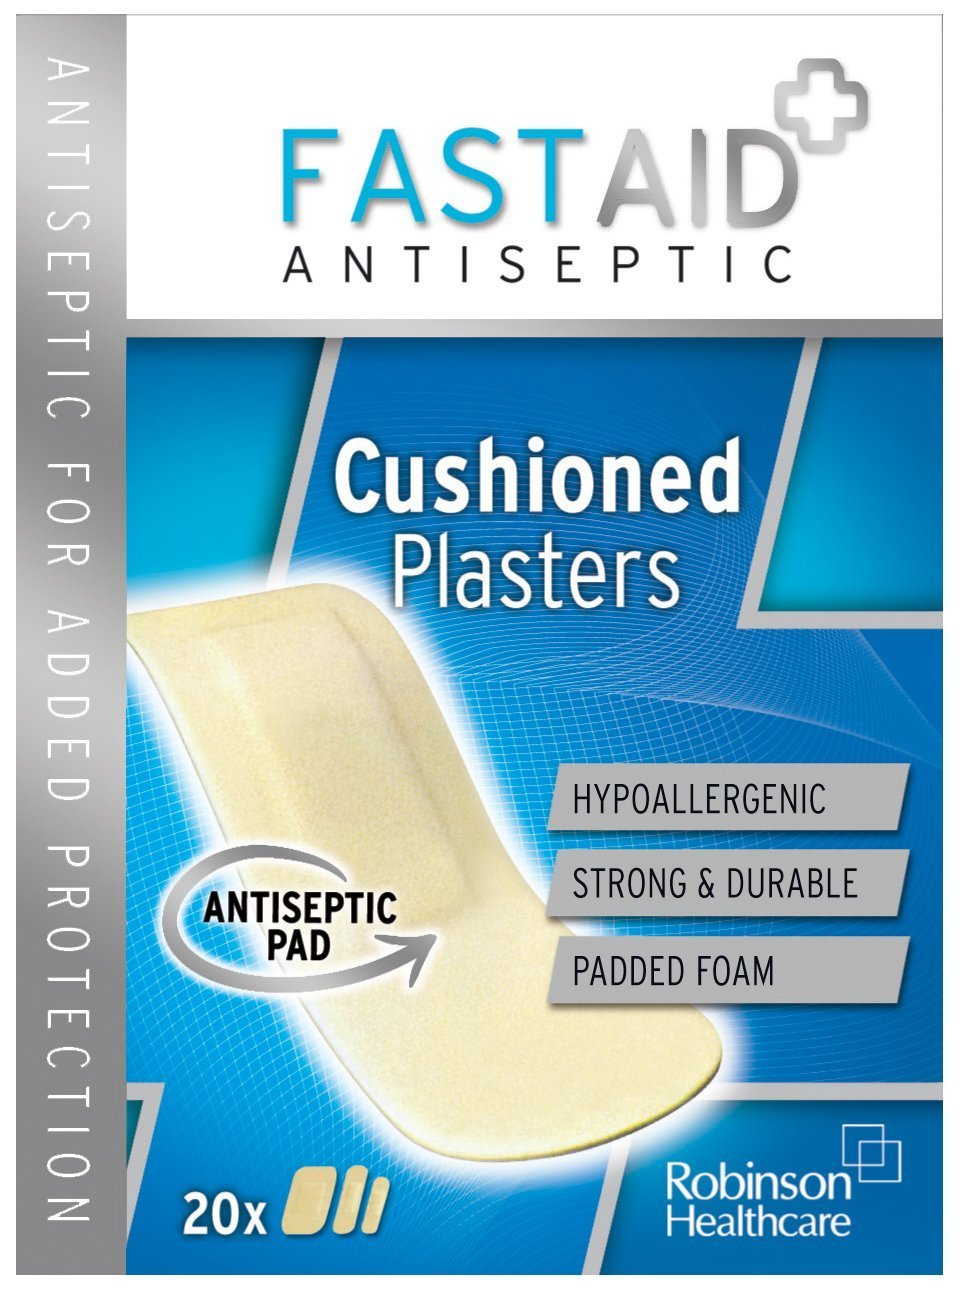 Fast Aid Birmingham Solihull: Fast Aid Antibacterial Cushioned Plasters Assorted Sizes